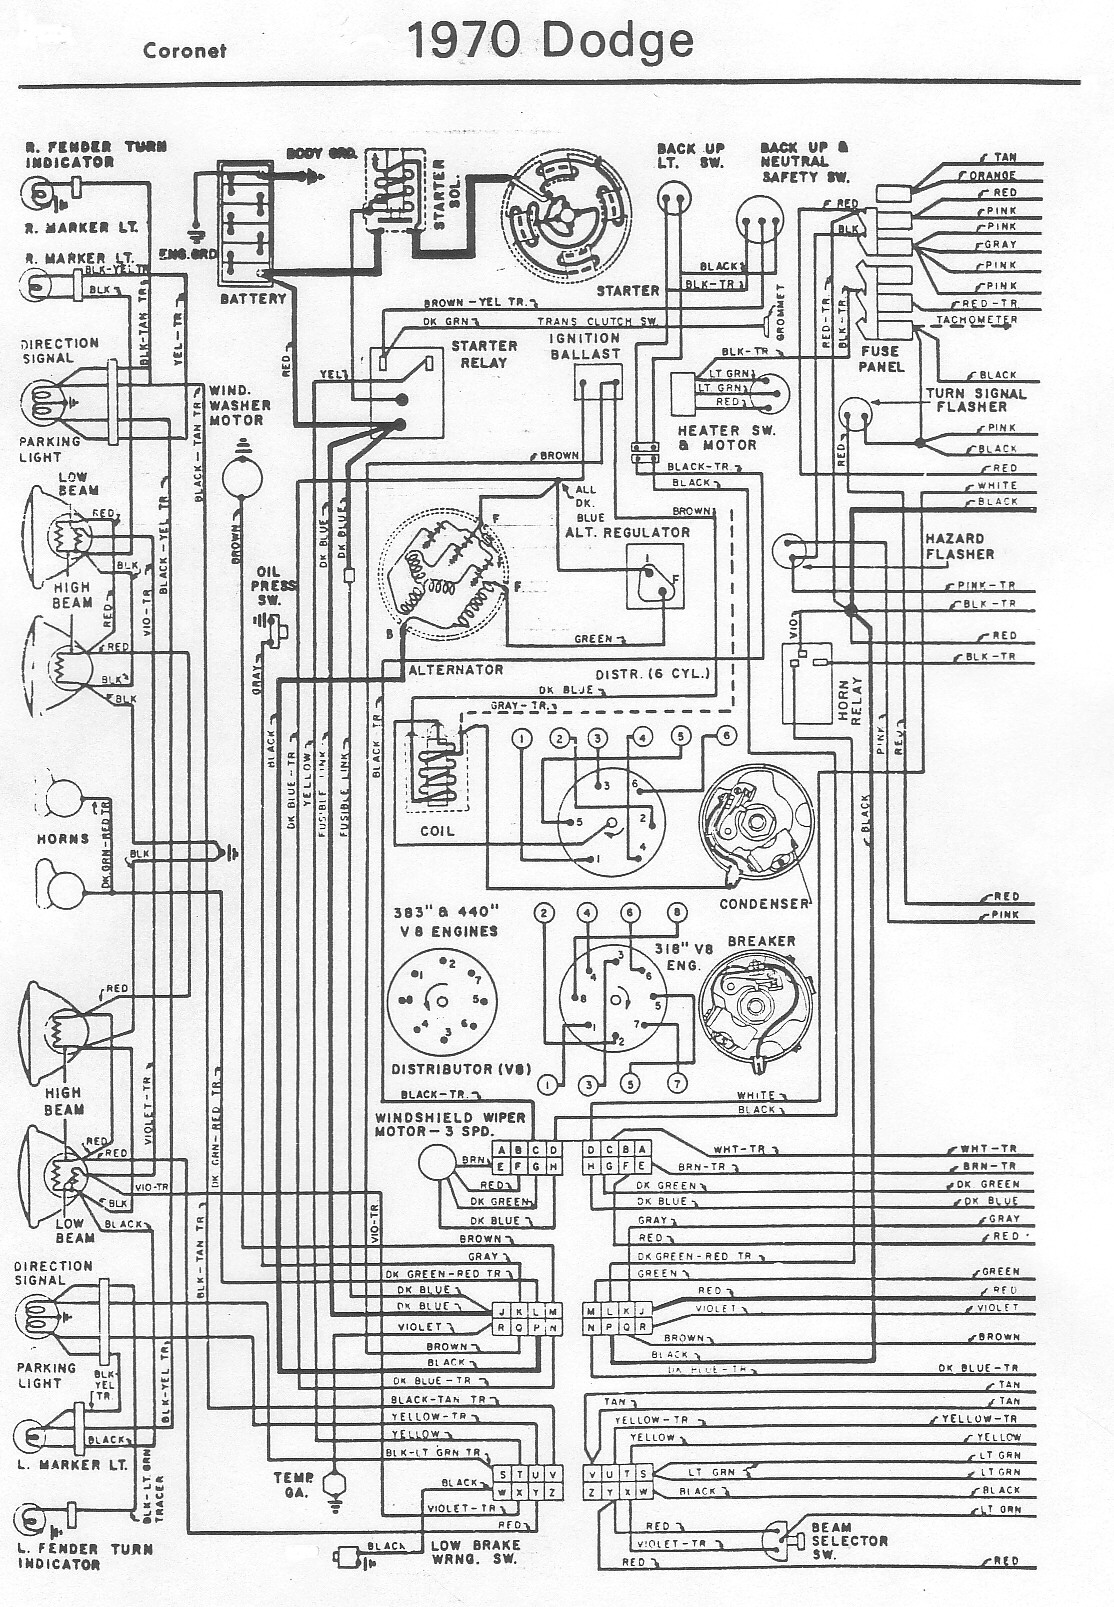 2009 05 07_000943_70CoronetA 1970 dodge 500 series schematics 1970 dodge coronet wiring diagram at alyssarenee.co